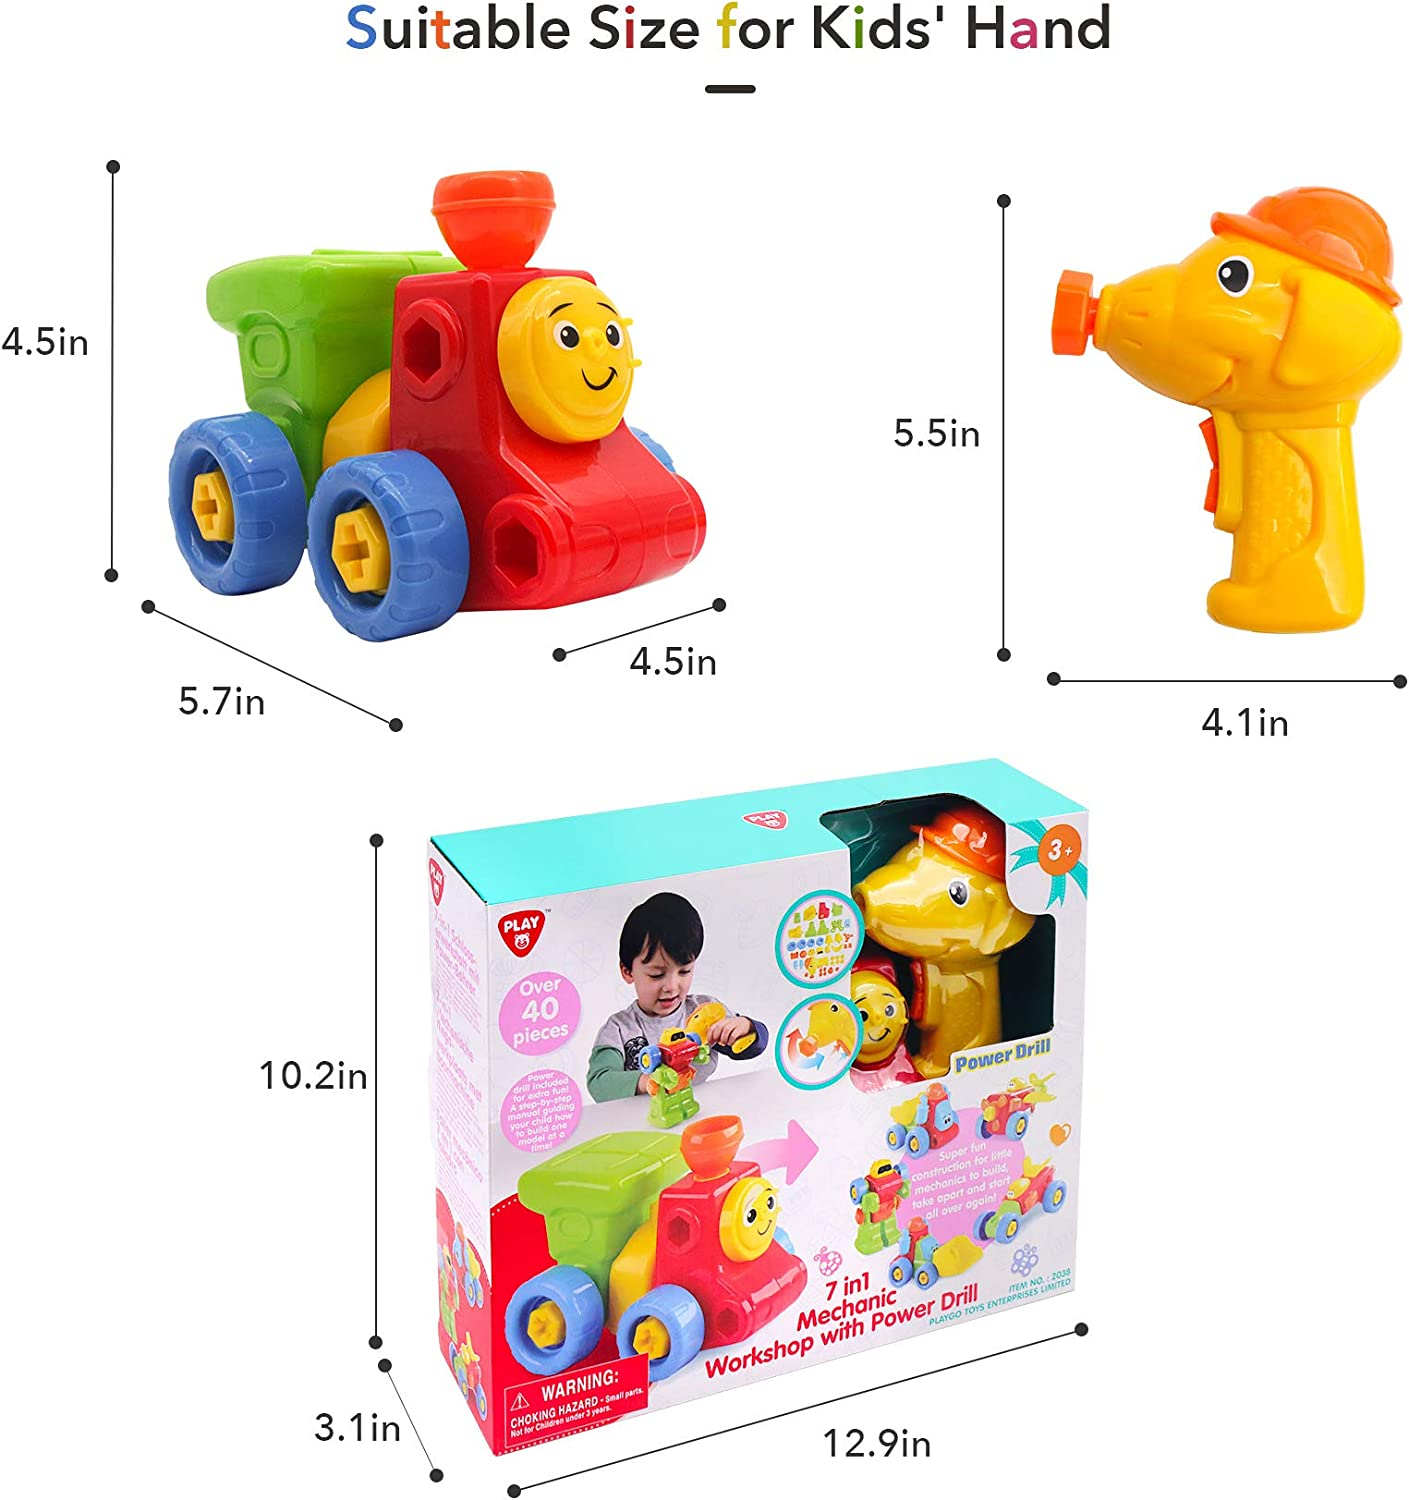 7 in 1 Take Apart Construction Vehicles Toys with Electric Drill for Toddlers STEM DIY Engineering Building PlaySet for Kids Age 3 4 5 Educational Toys Birthday for Boys Girls